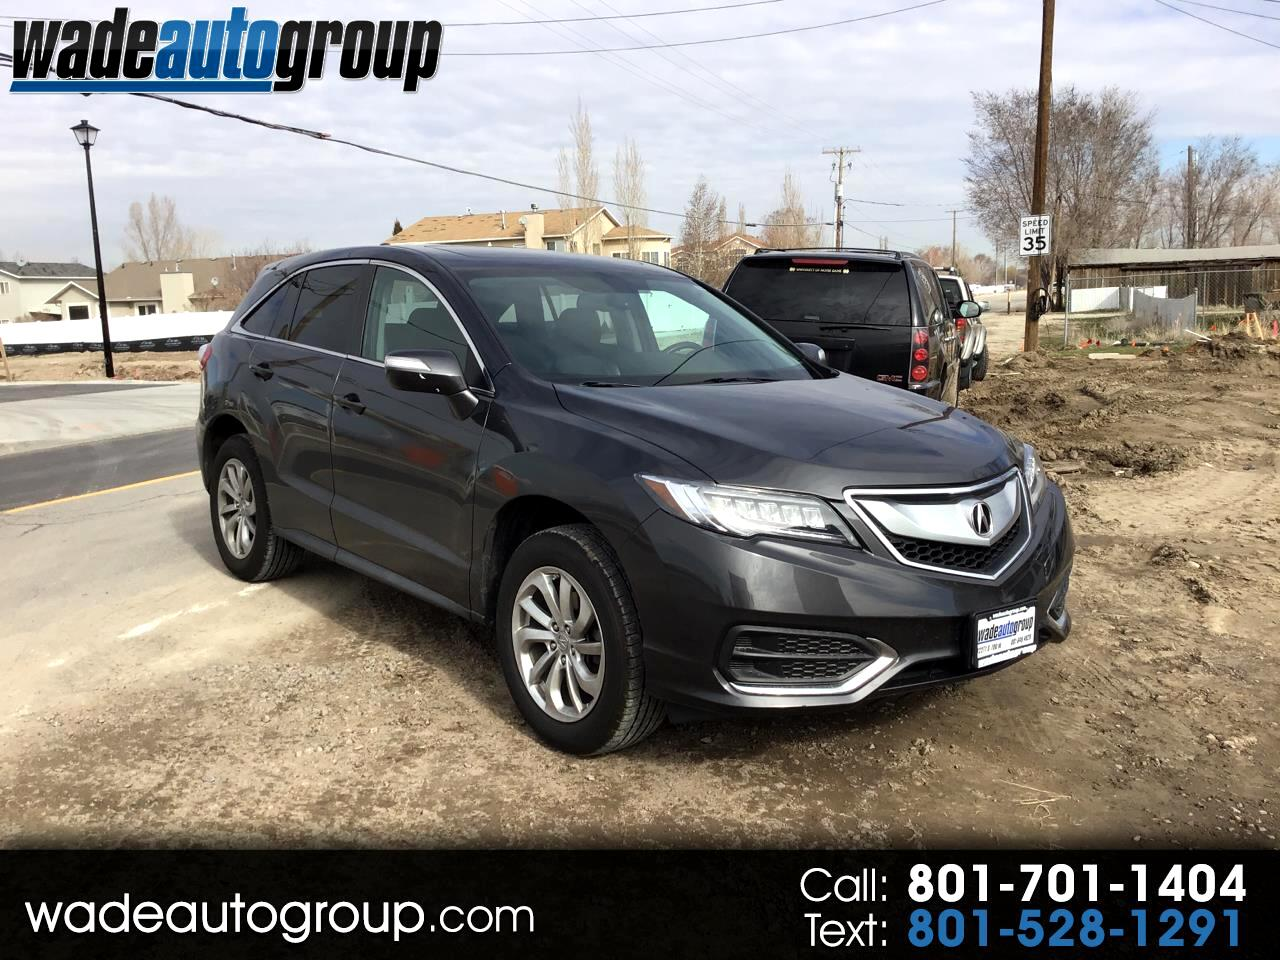 2016 Acura RDX 6-Spd AT AWD w/ Technolgy Package/AcuraWatch Plus